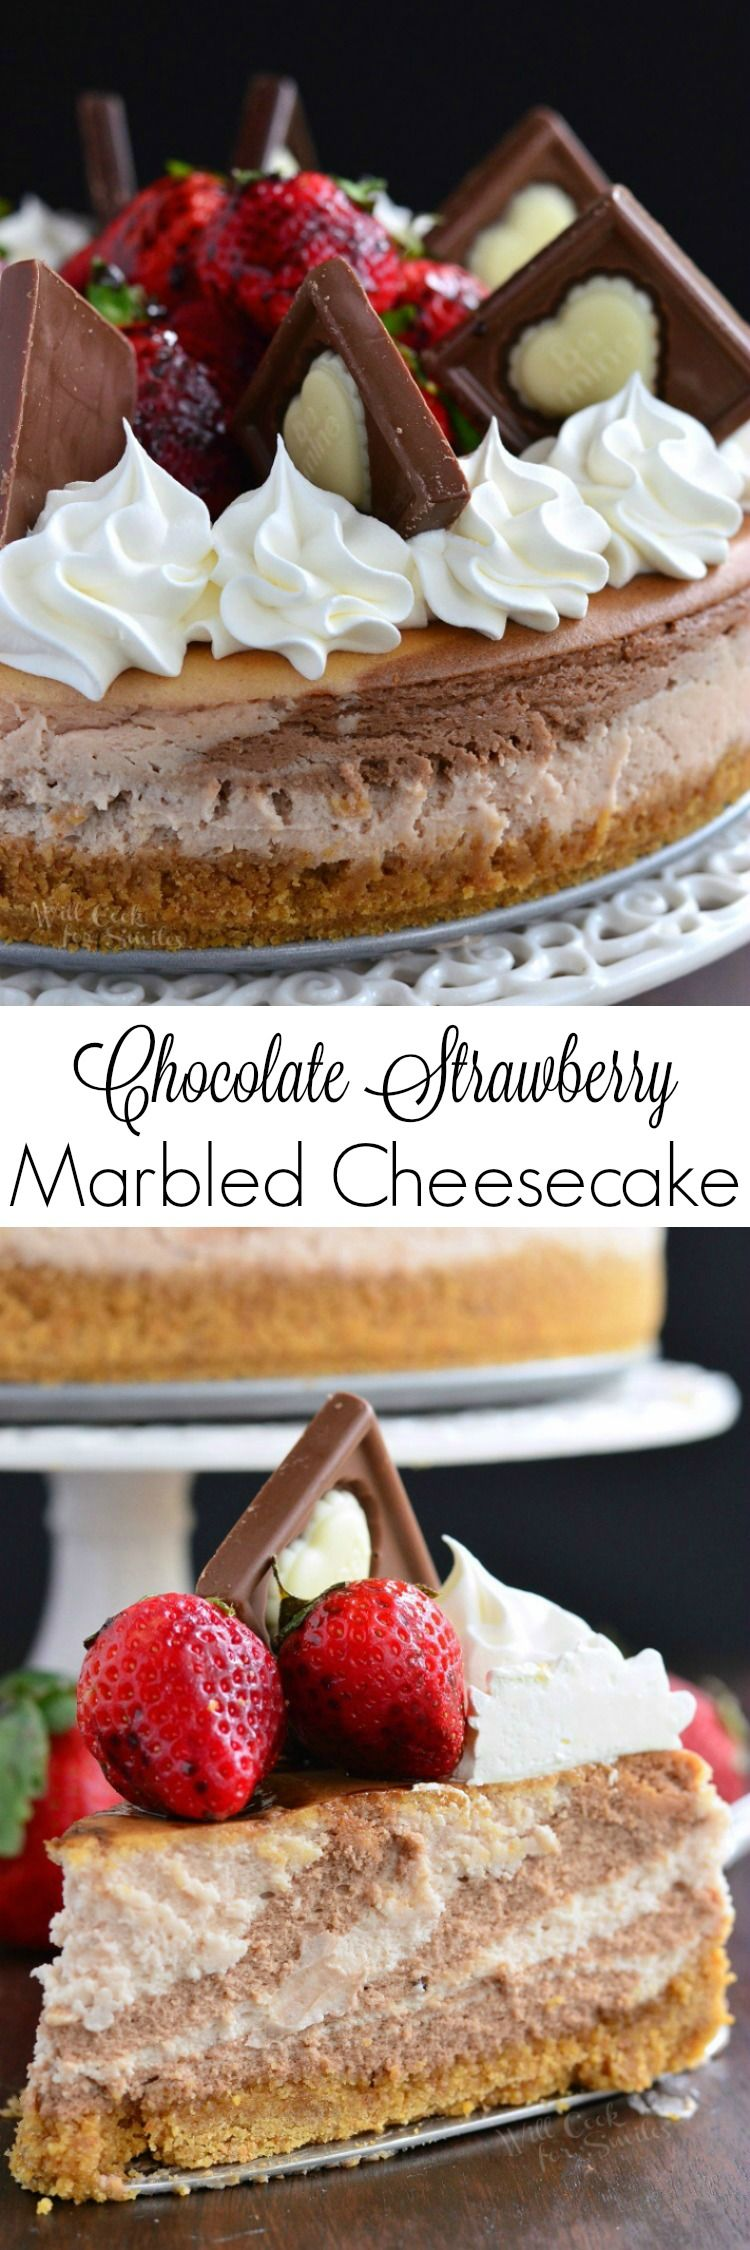 Chocolate Strawberry Marbled Cheesecake. Smooth strawberry and chocolate cheesecake batters are easily layered to create a marbled cheesecake look.